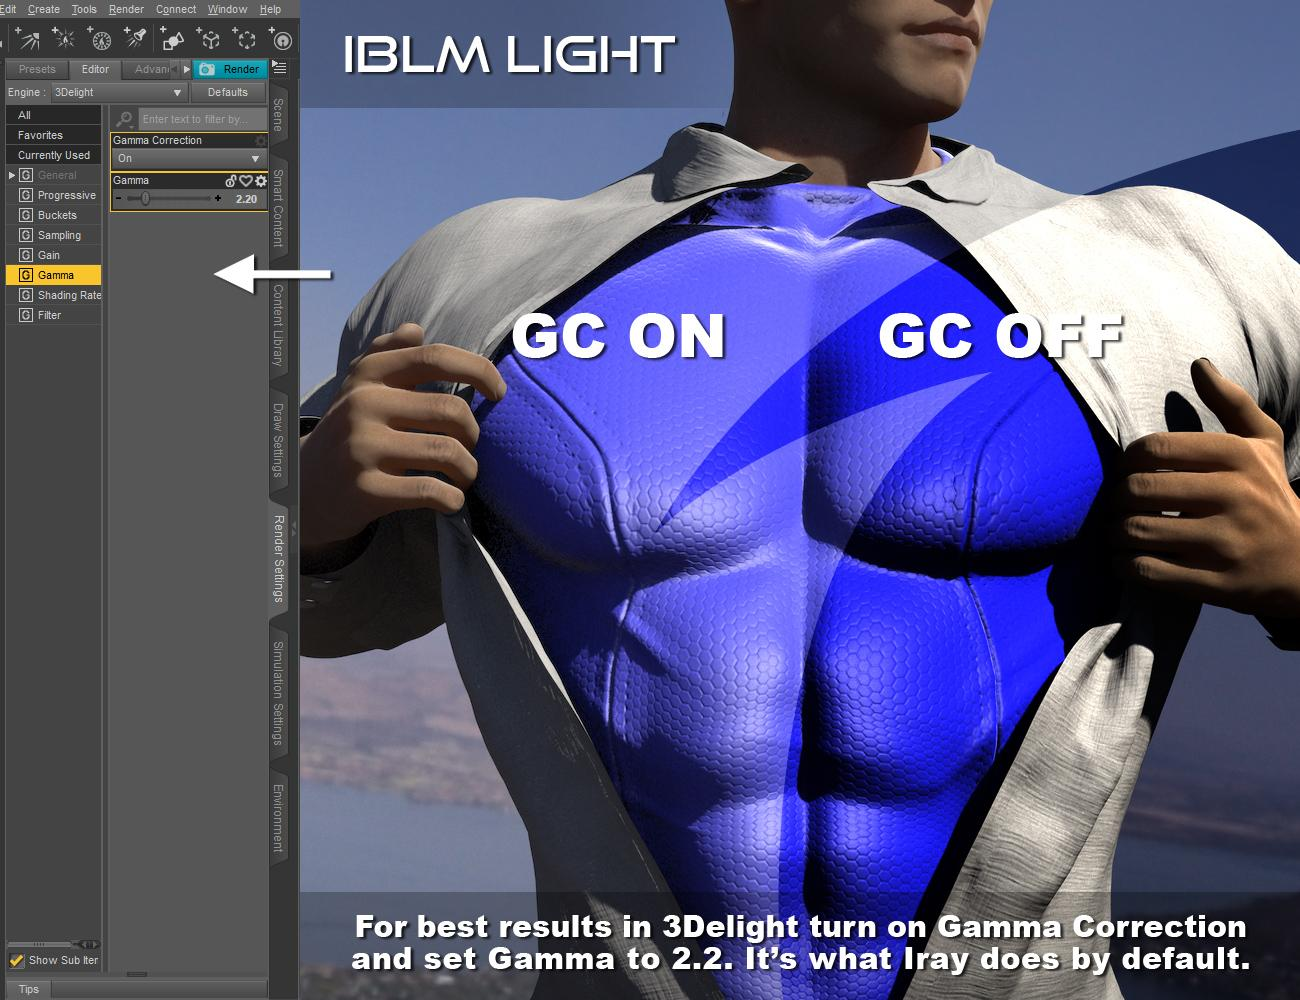 IBL Master: 3Delight render split - Gamma Correction vs No Gamma Correction